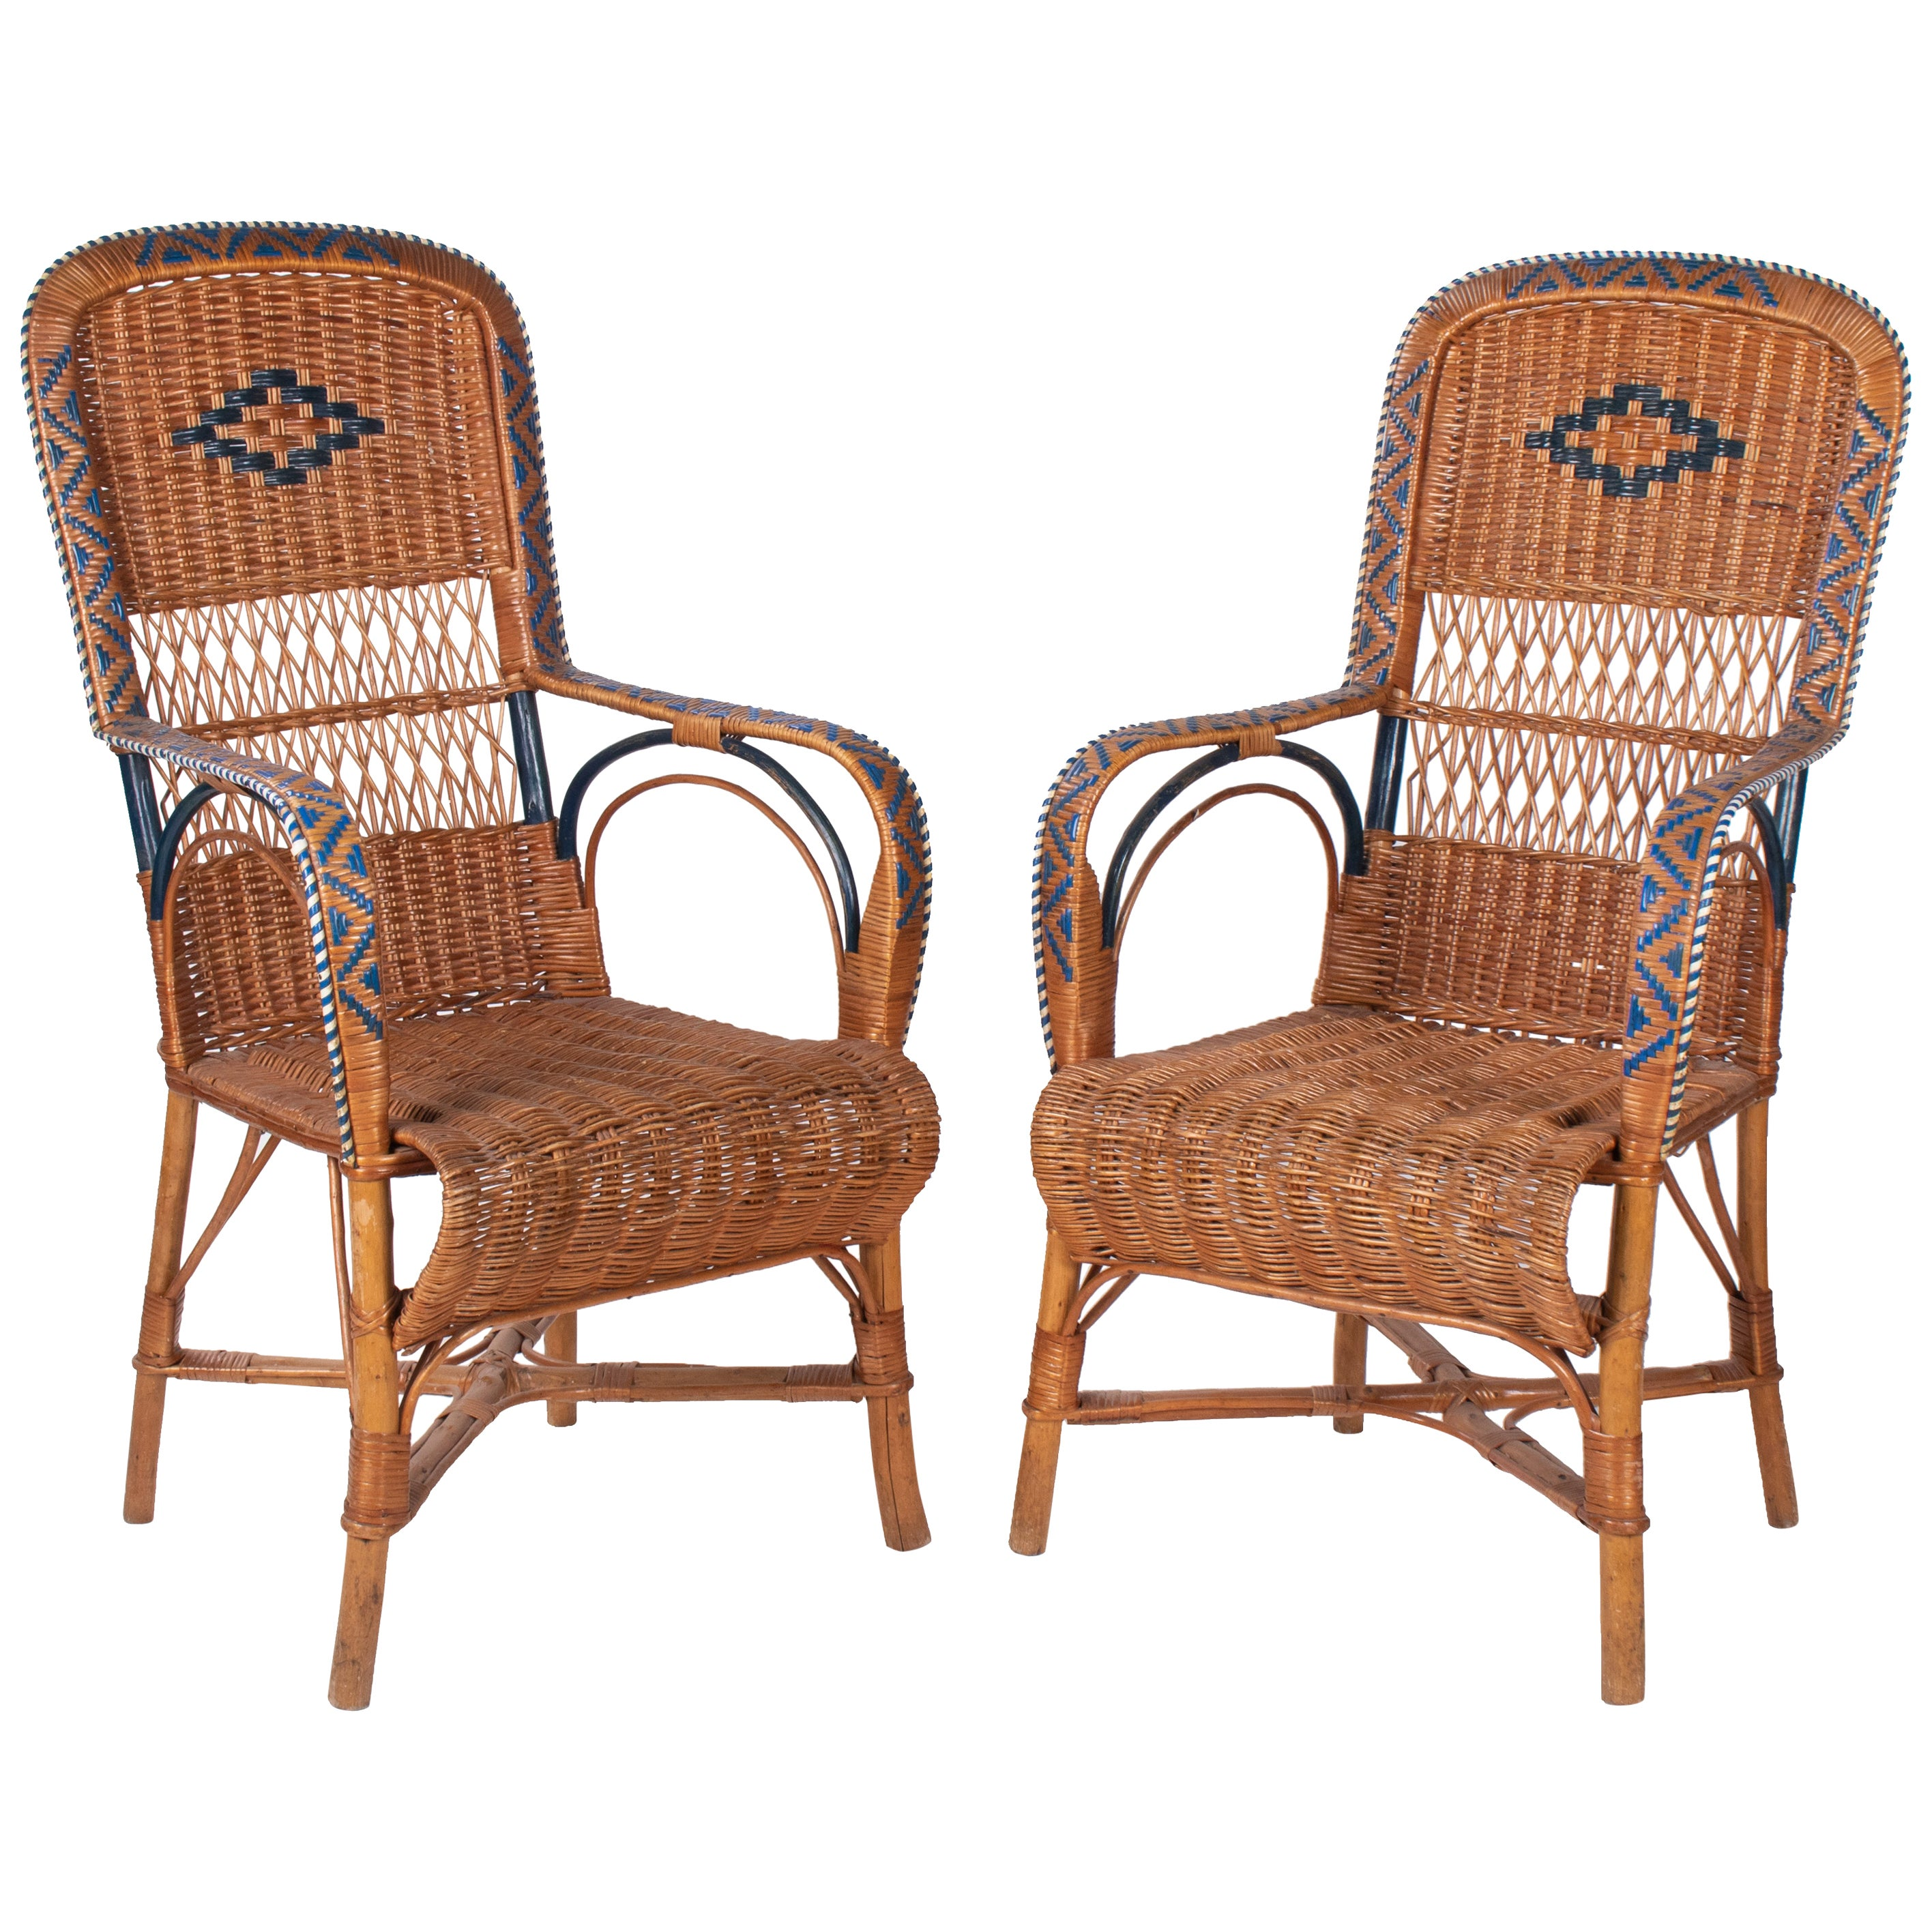 1970s Spanish Pair of Wicker and Wood Decorated Armchairs